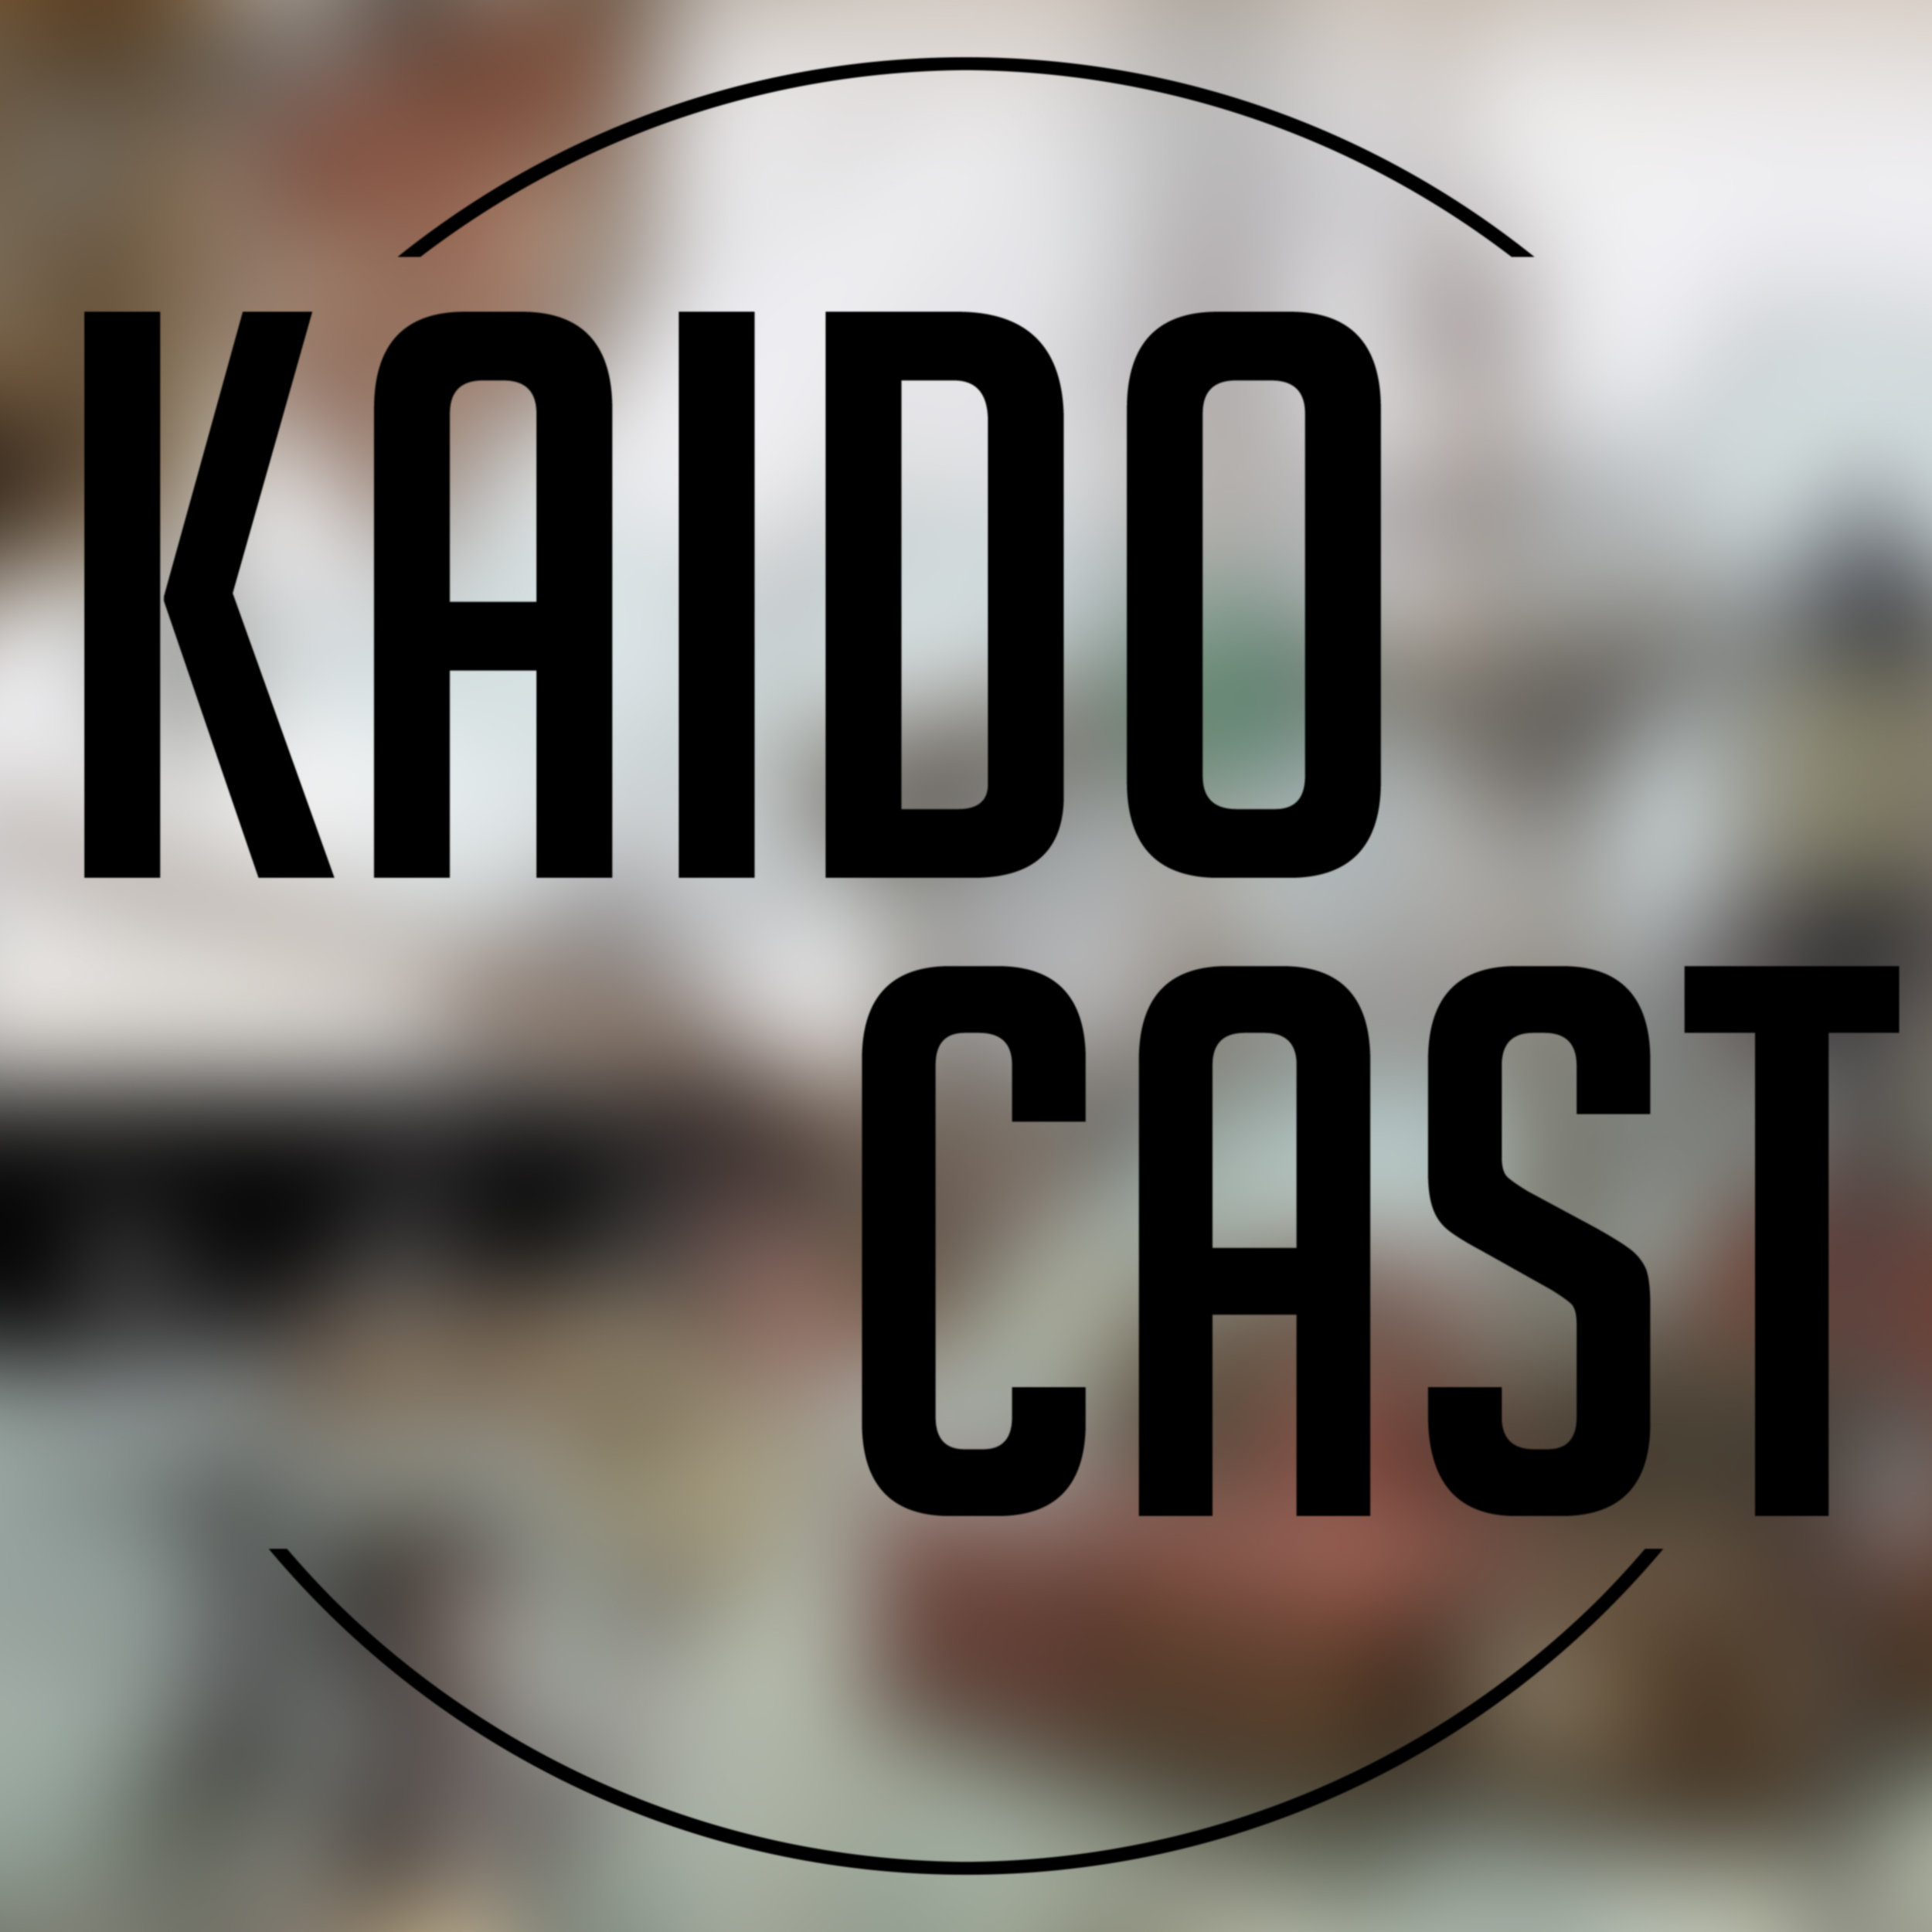 KAIDO Cast 29 - Call me Ishmael - Stop by to hear us talk about Zac's recent decision to join a fraternity before hearing about Nantucket and Angels Fall First. Then, stick around for an interview with Cosmo D about his work in games!